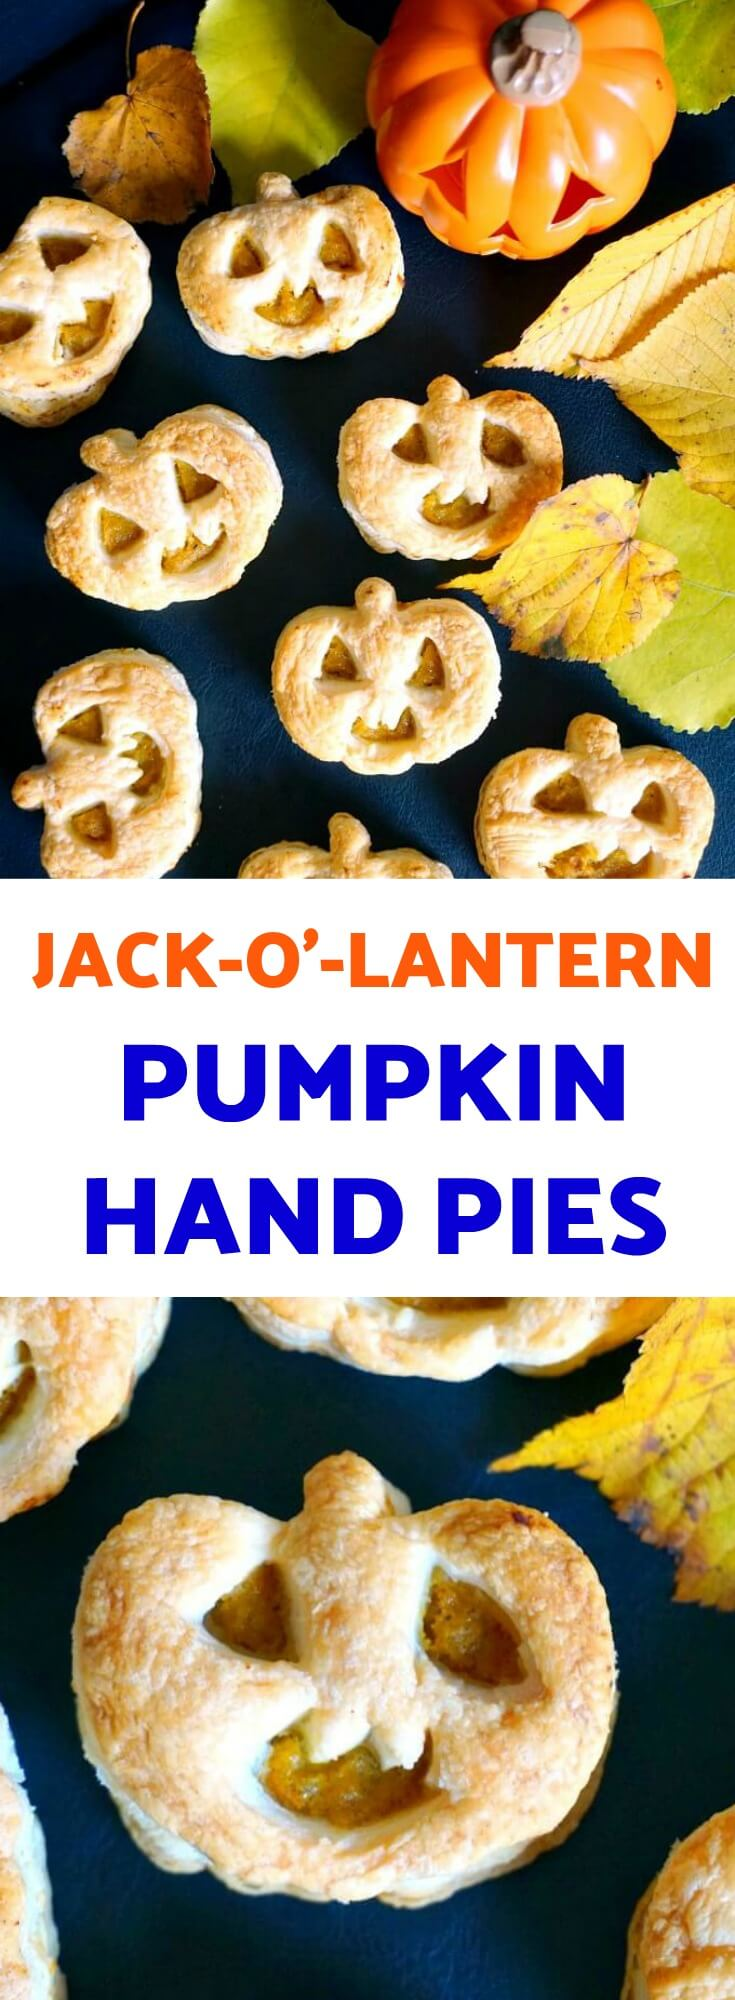 Jack-O'-Lantern Pumpkin Hand Pies, some delicious Halloween treats that you must try this Fall. Super easy and fun to make, these pies will be a big hit with everyone, from little to big tummies.